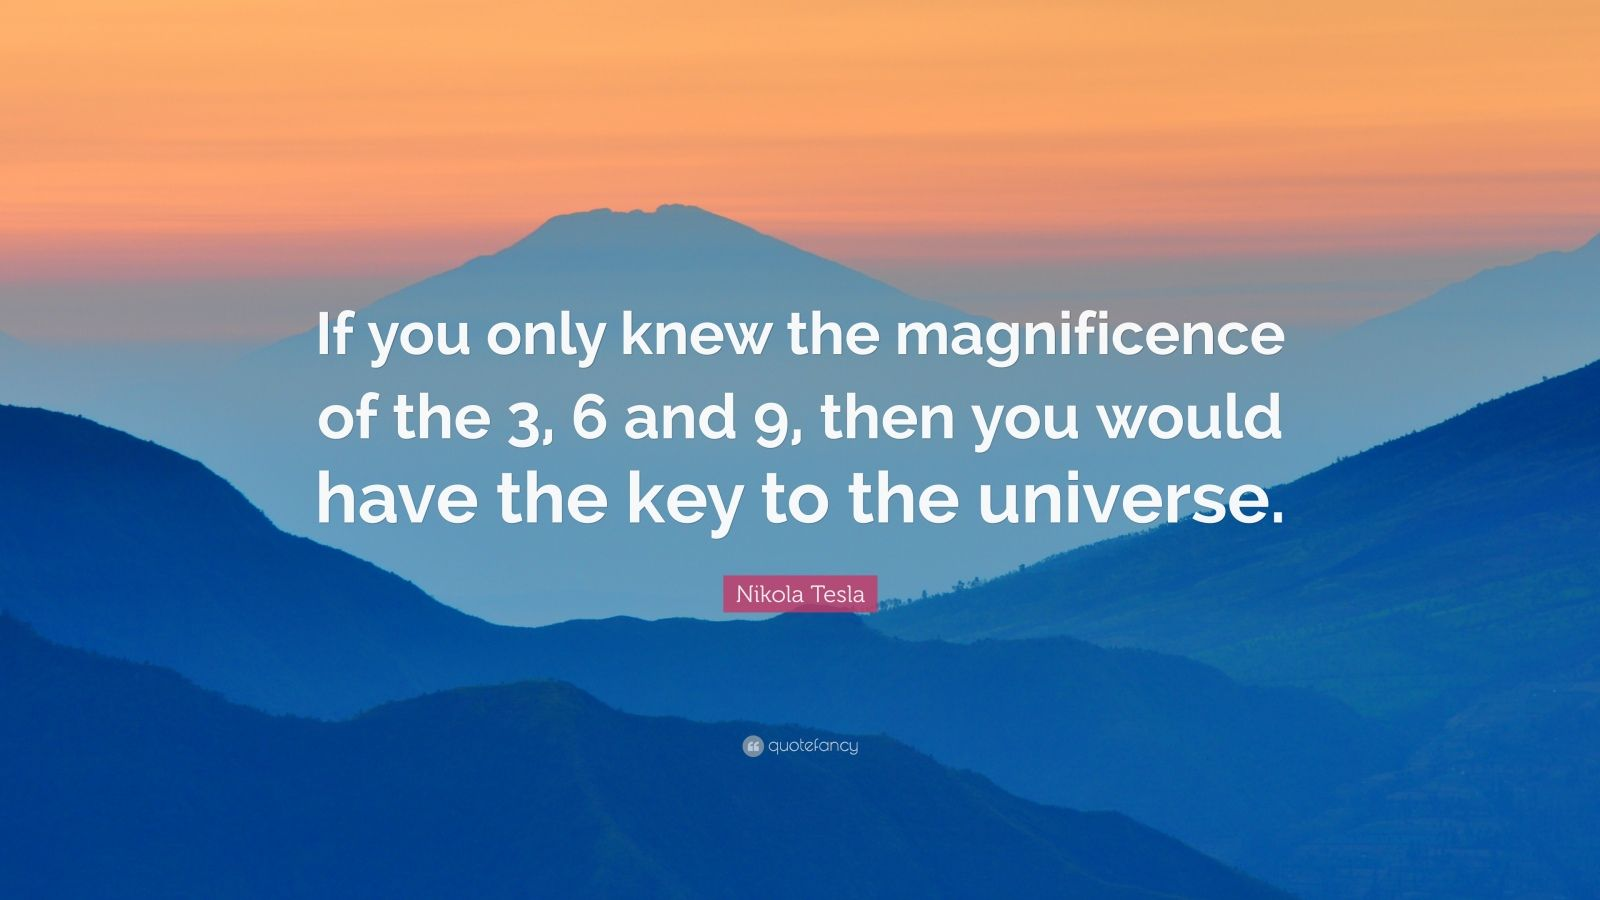 """Nikola Tesla Quote: """"If you only knew the magnificence of the 3, 6 and 9, then you would have the key to the universe."""""""